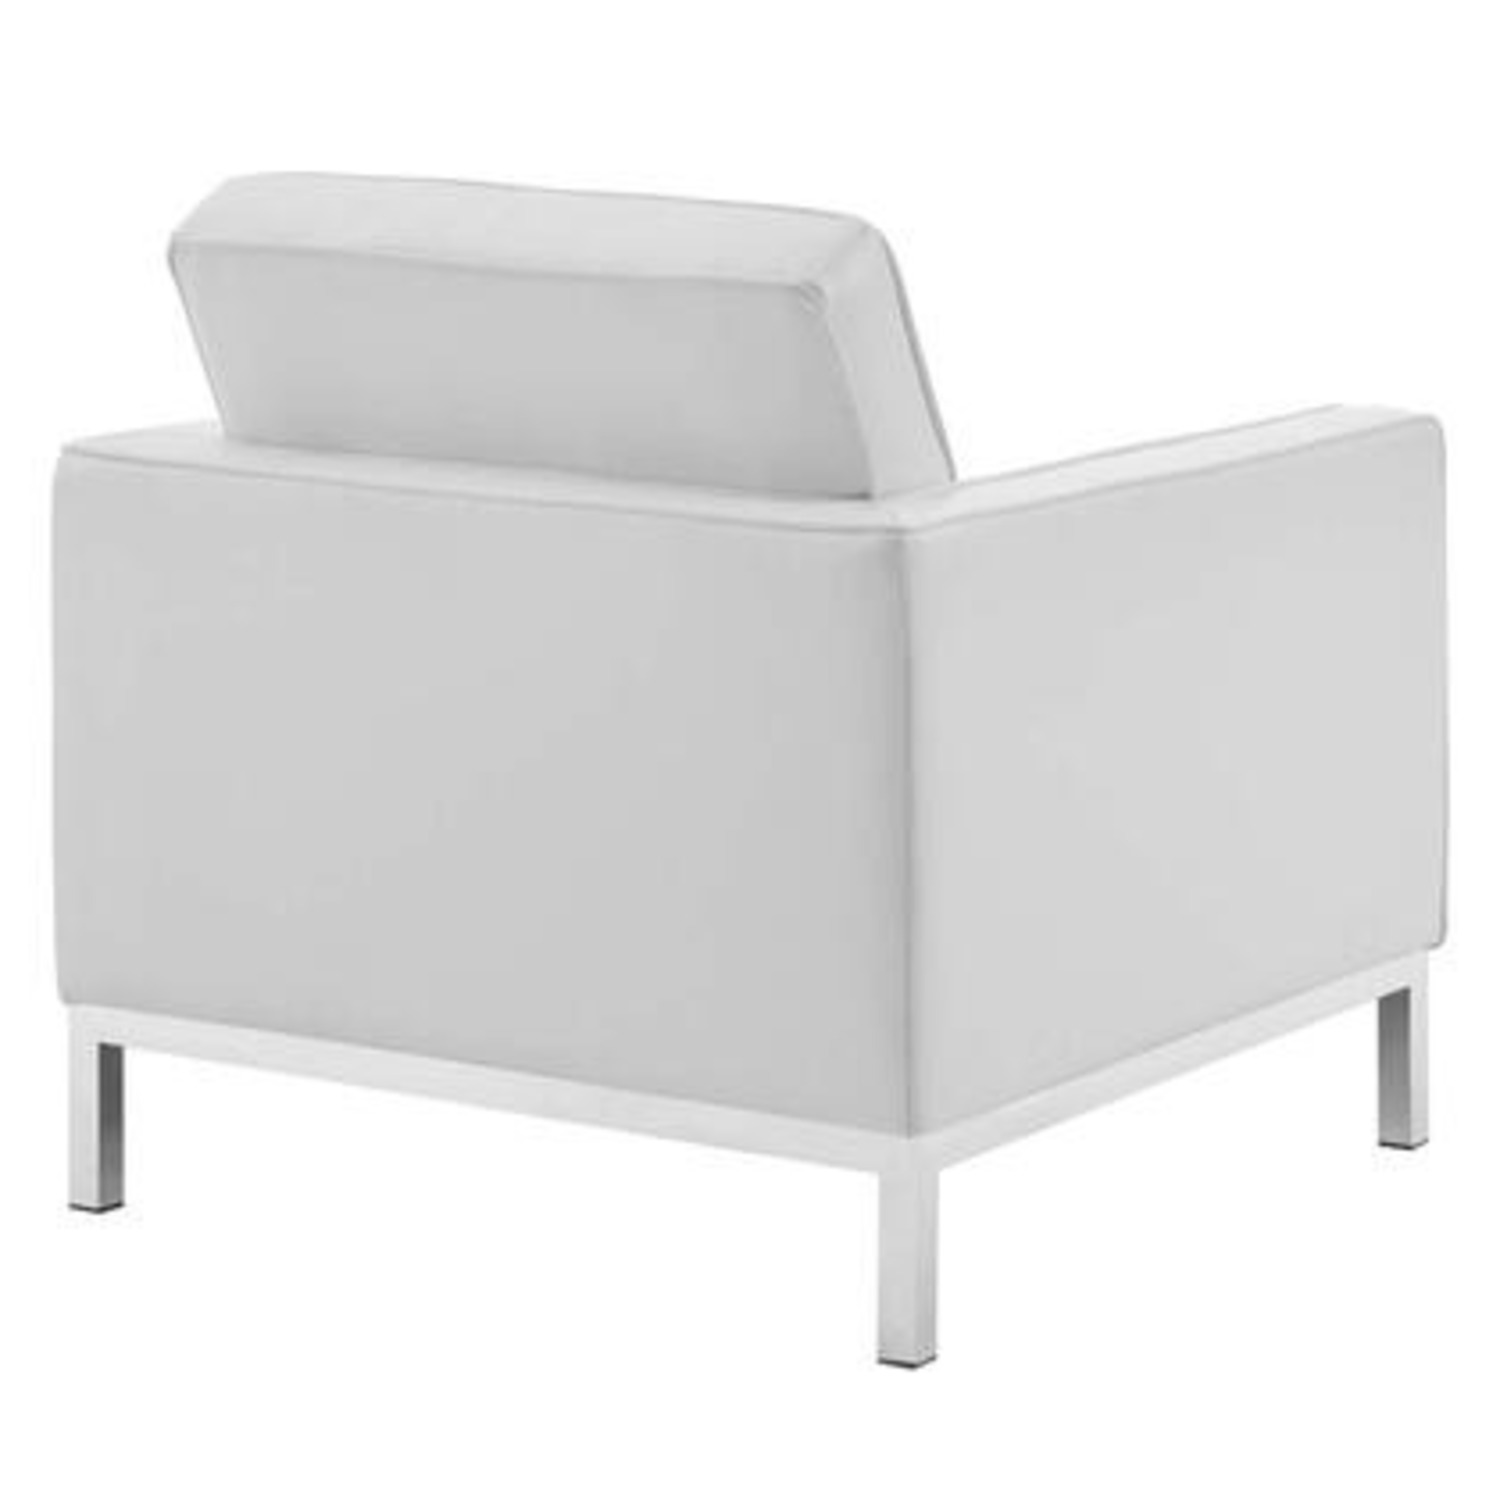 Armchair In White Faux Leather W/ Silver Legs - image-2